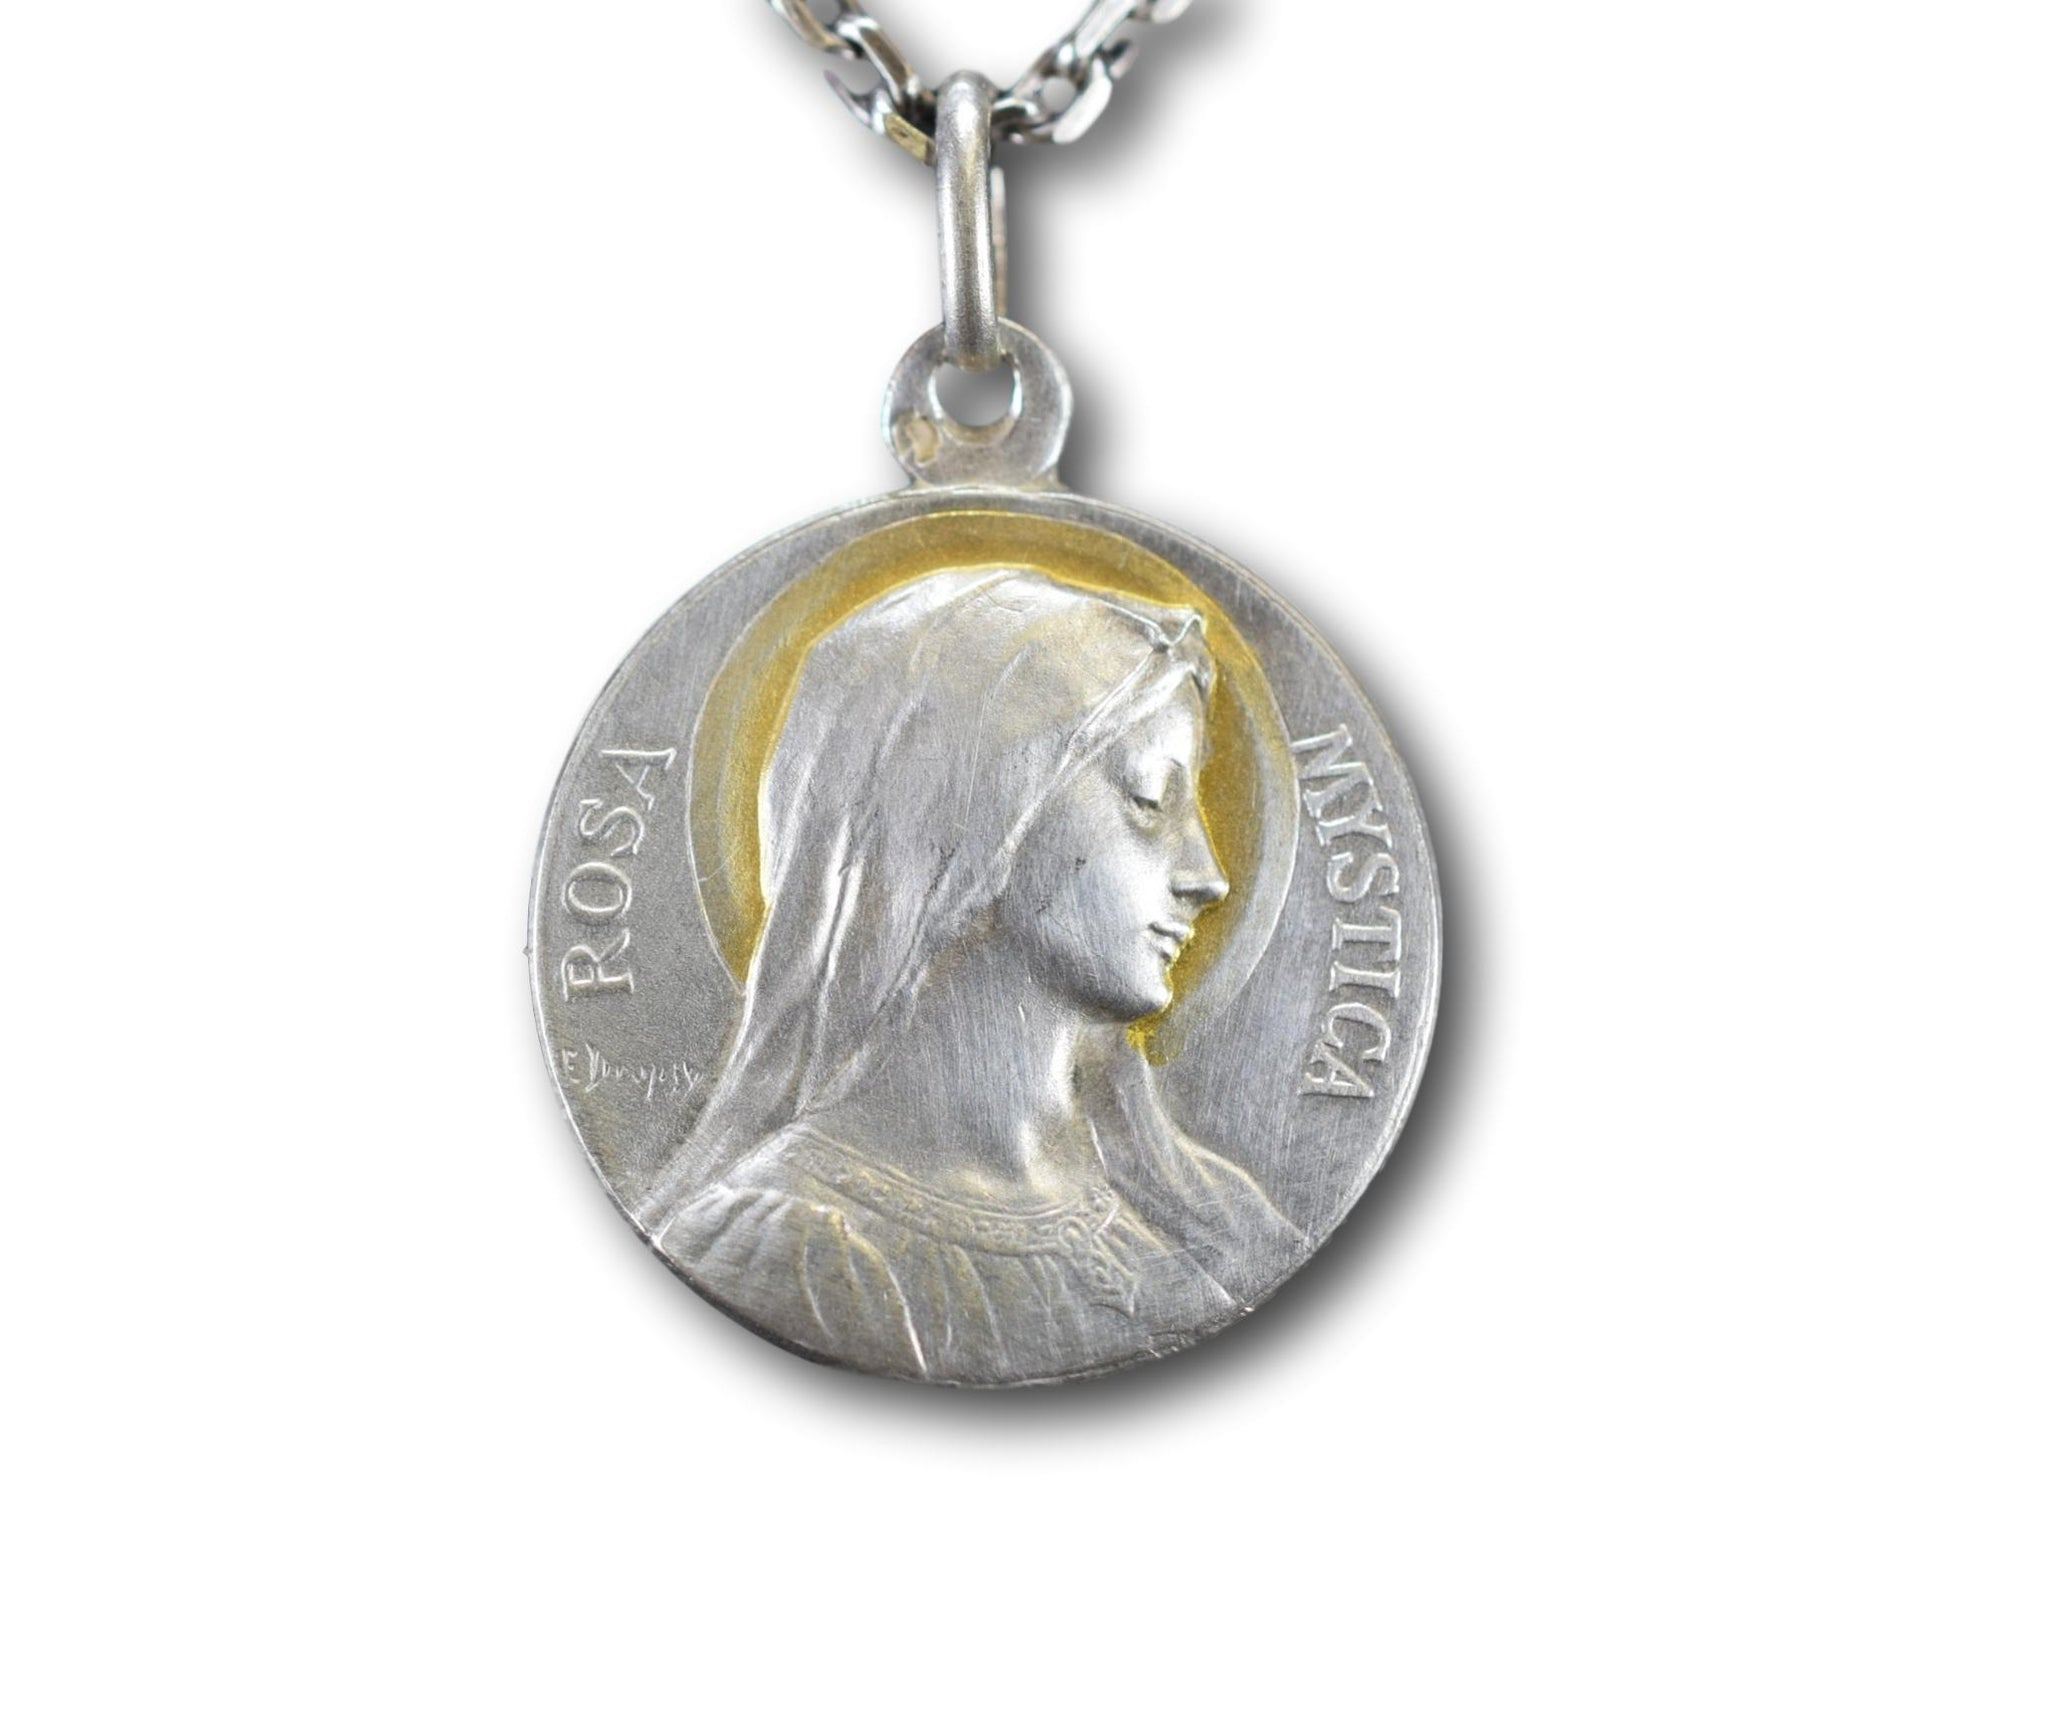 French Art Nouveau Sterling Silver Mary Medal by Emile Dropsy Rosa Mystica